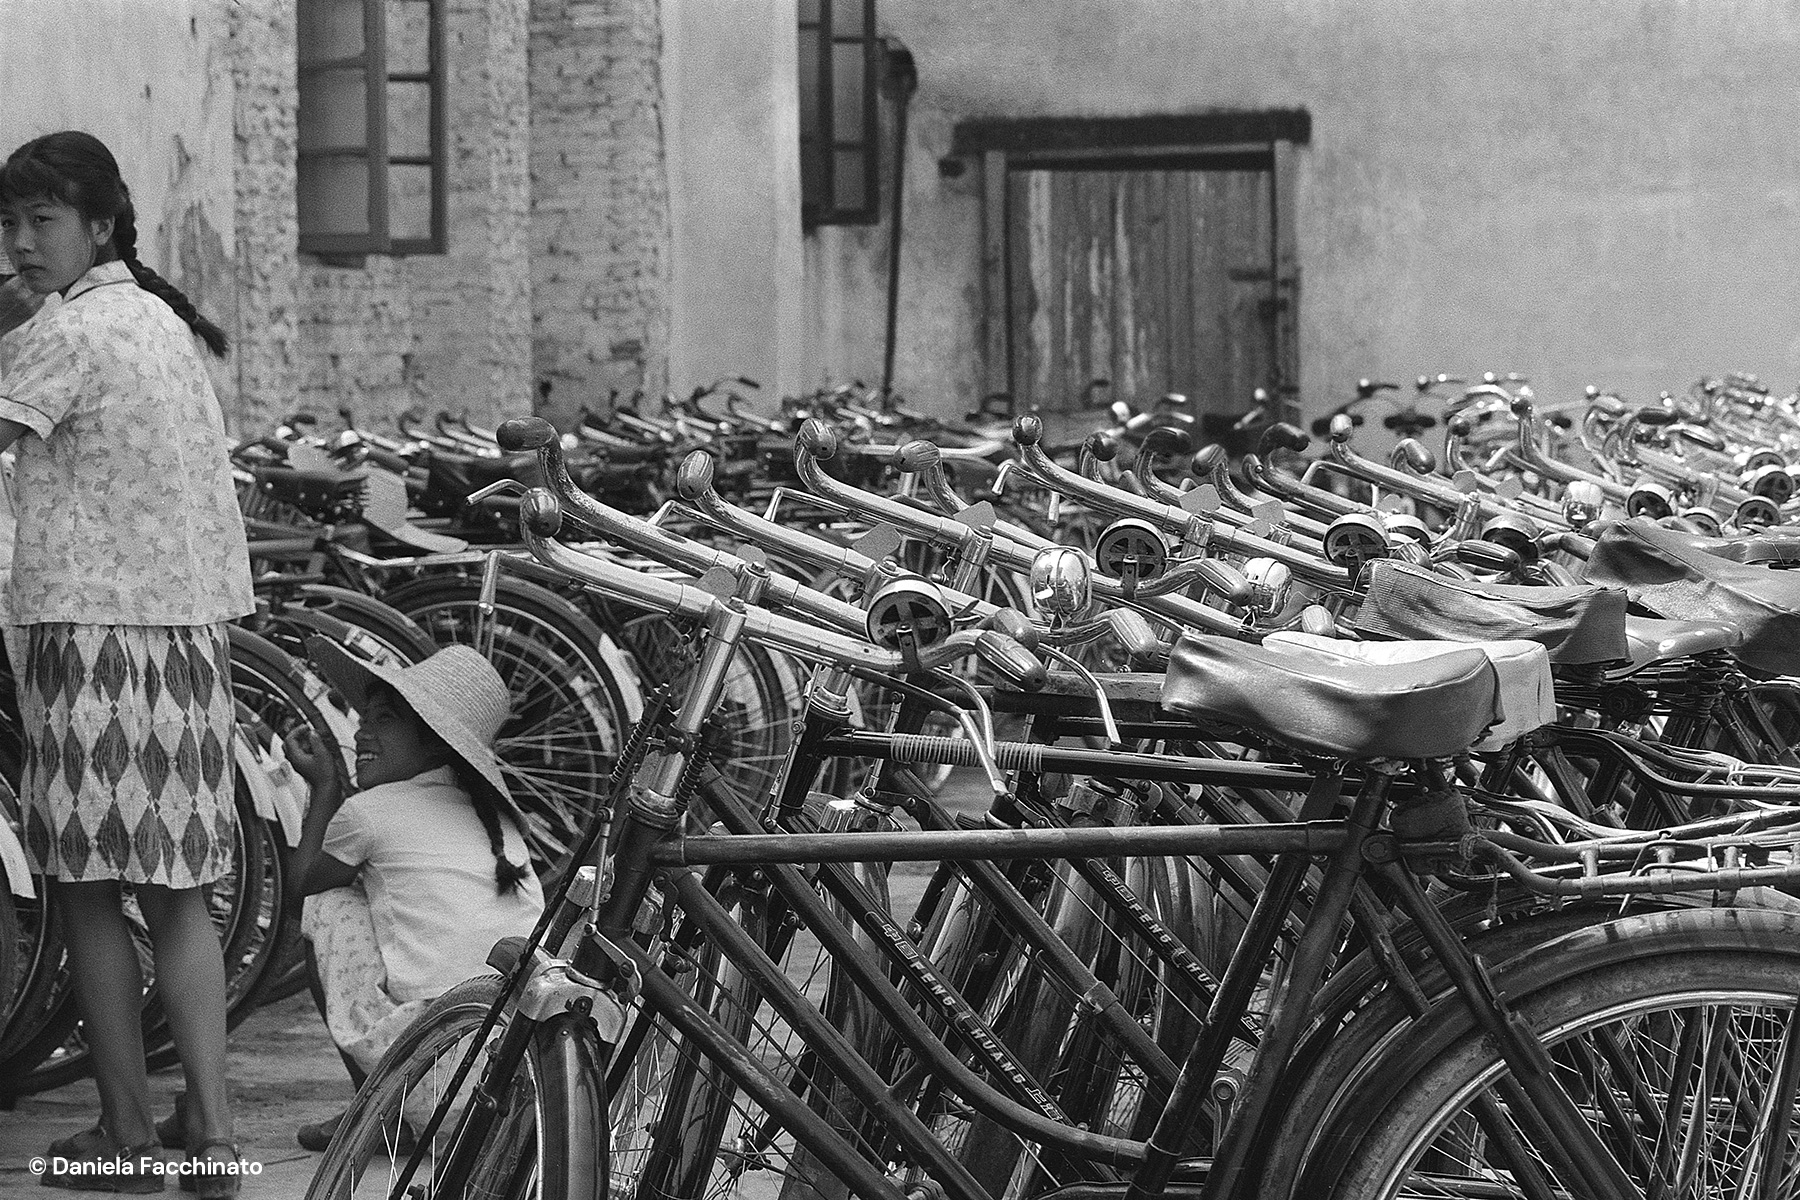 Wuhan, Hubei, China, 1976. Bicycles were the common means of transport at Mao Zedong's days